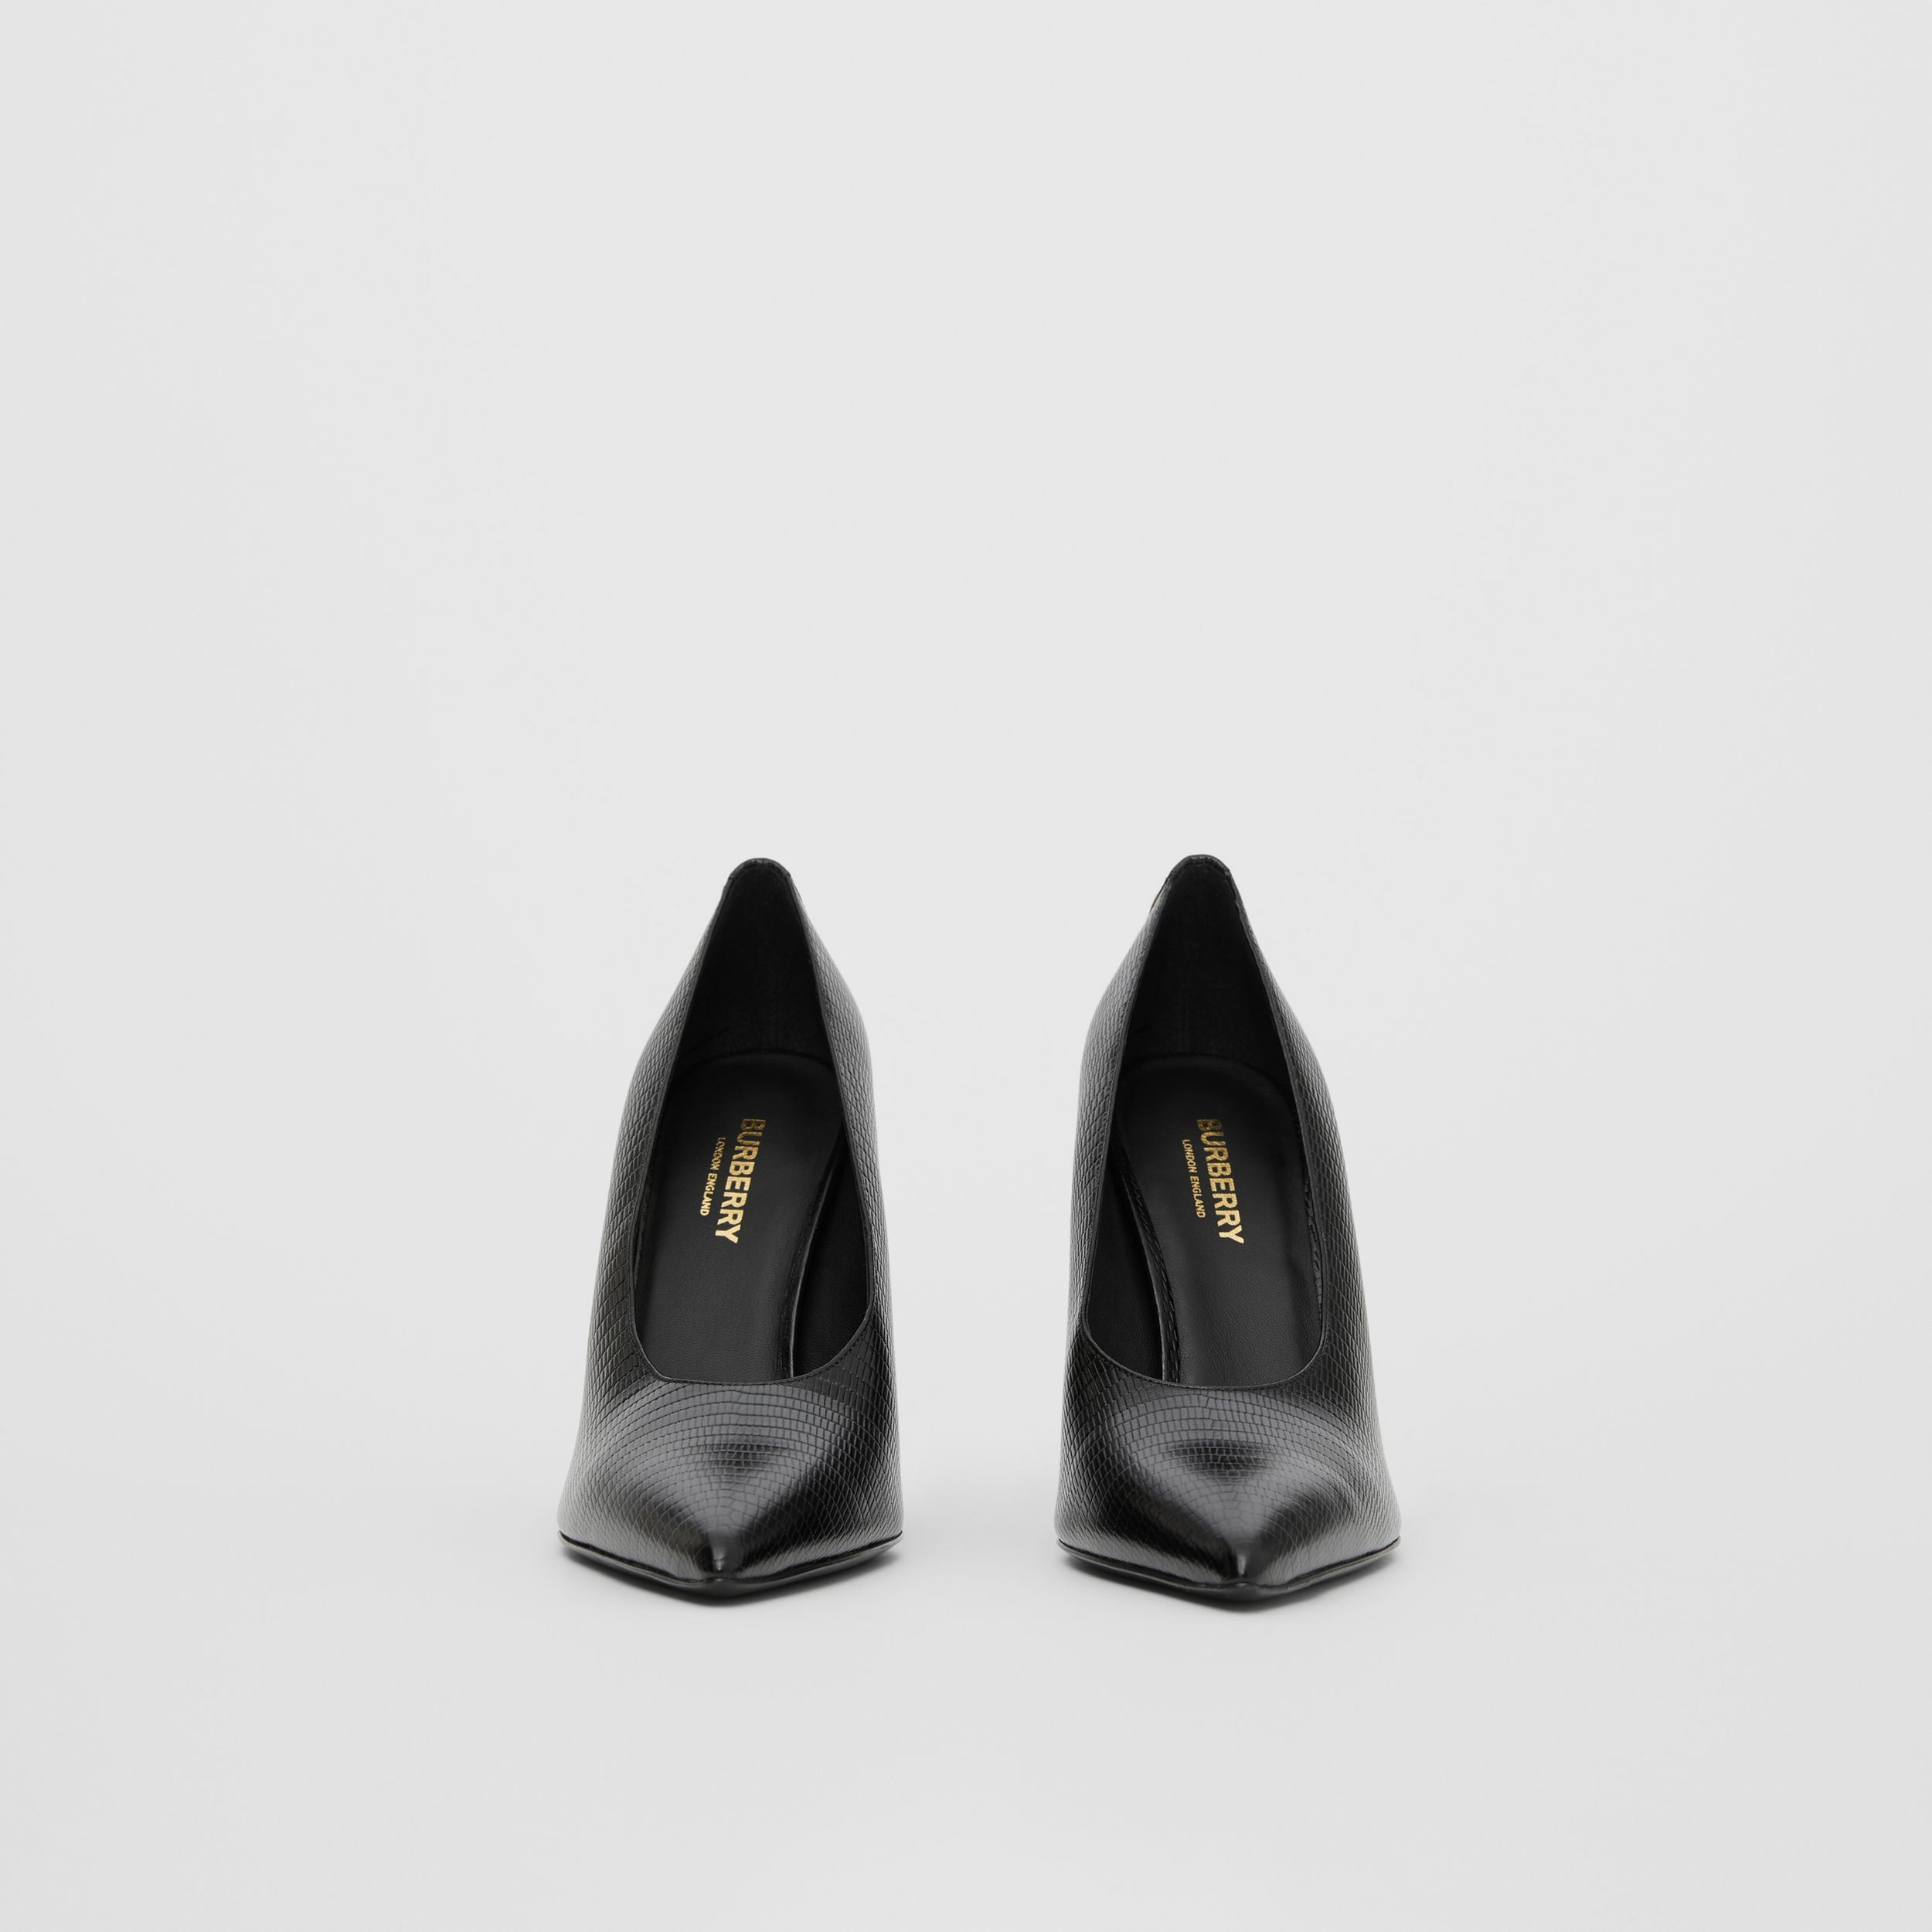 Stud Detail Embossed Leather Point-toe Pumps in Black - Women | Burberry - 4